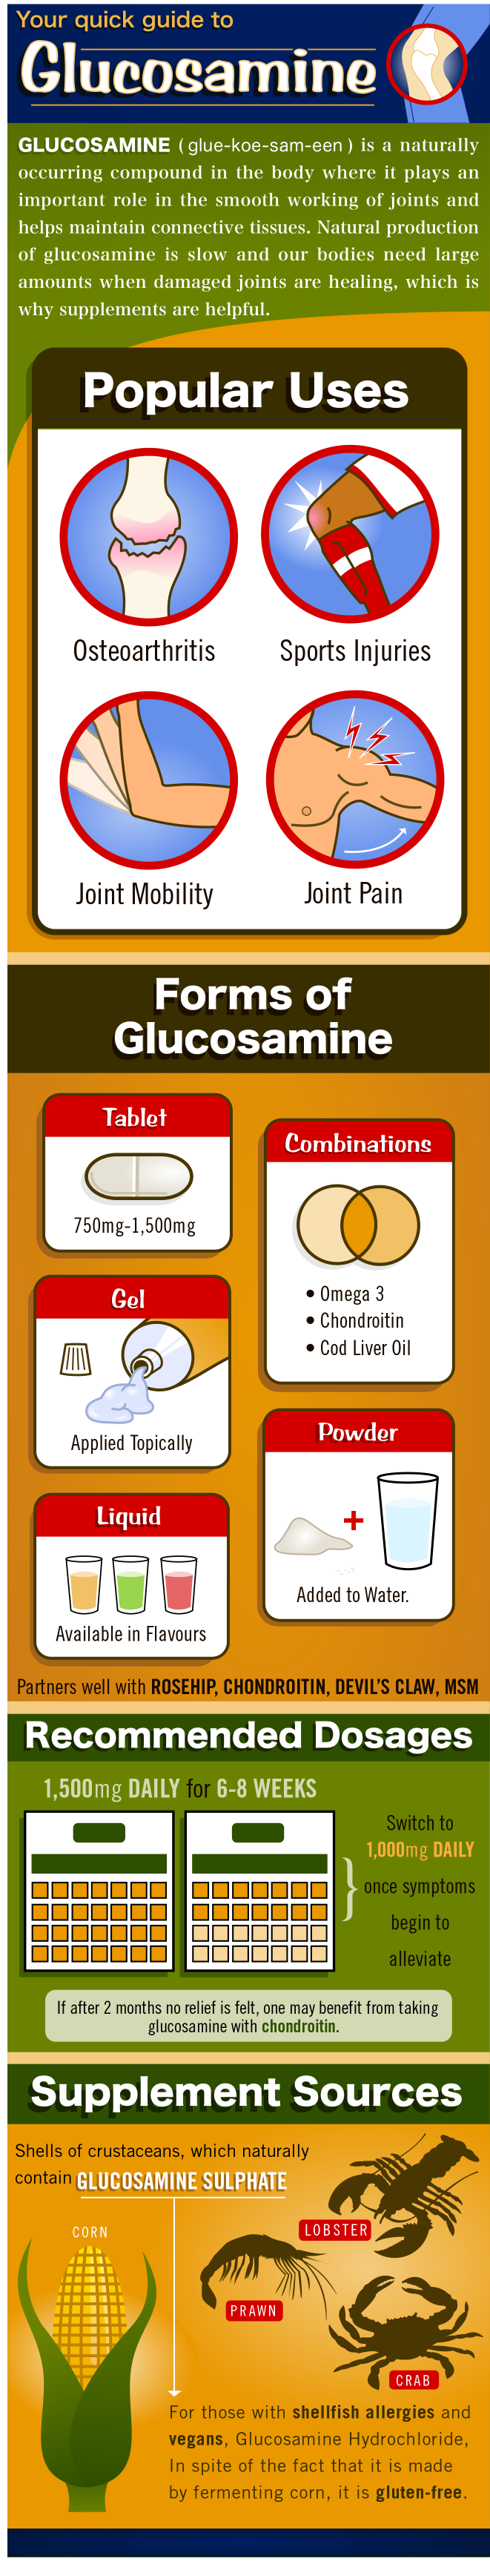 Your quick guide to Glucosamine - Healthspan